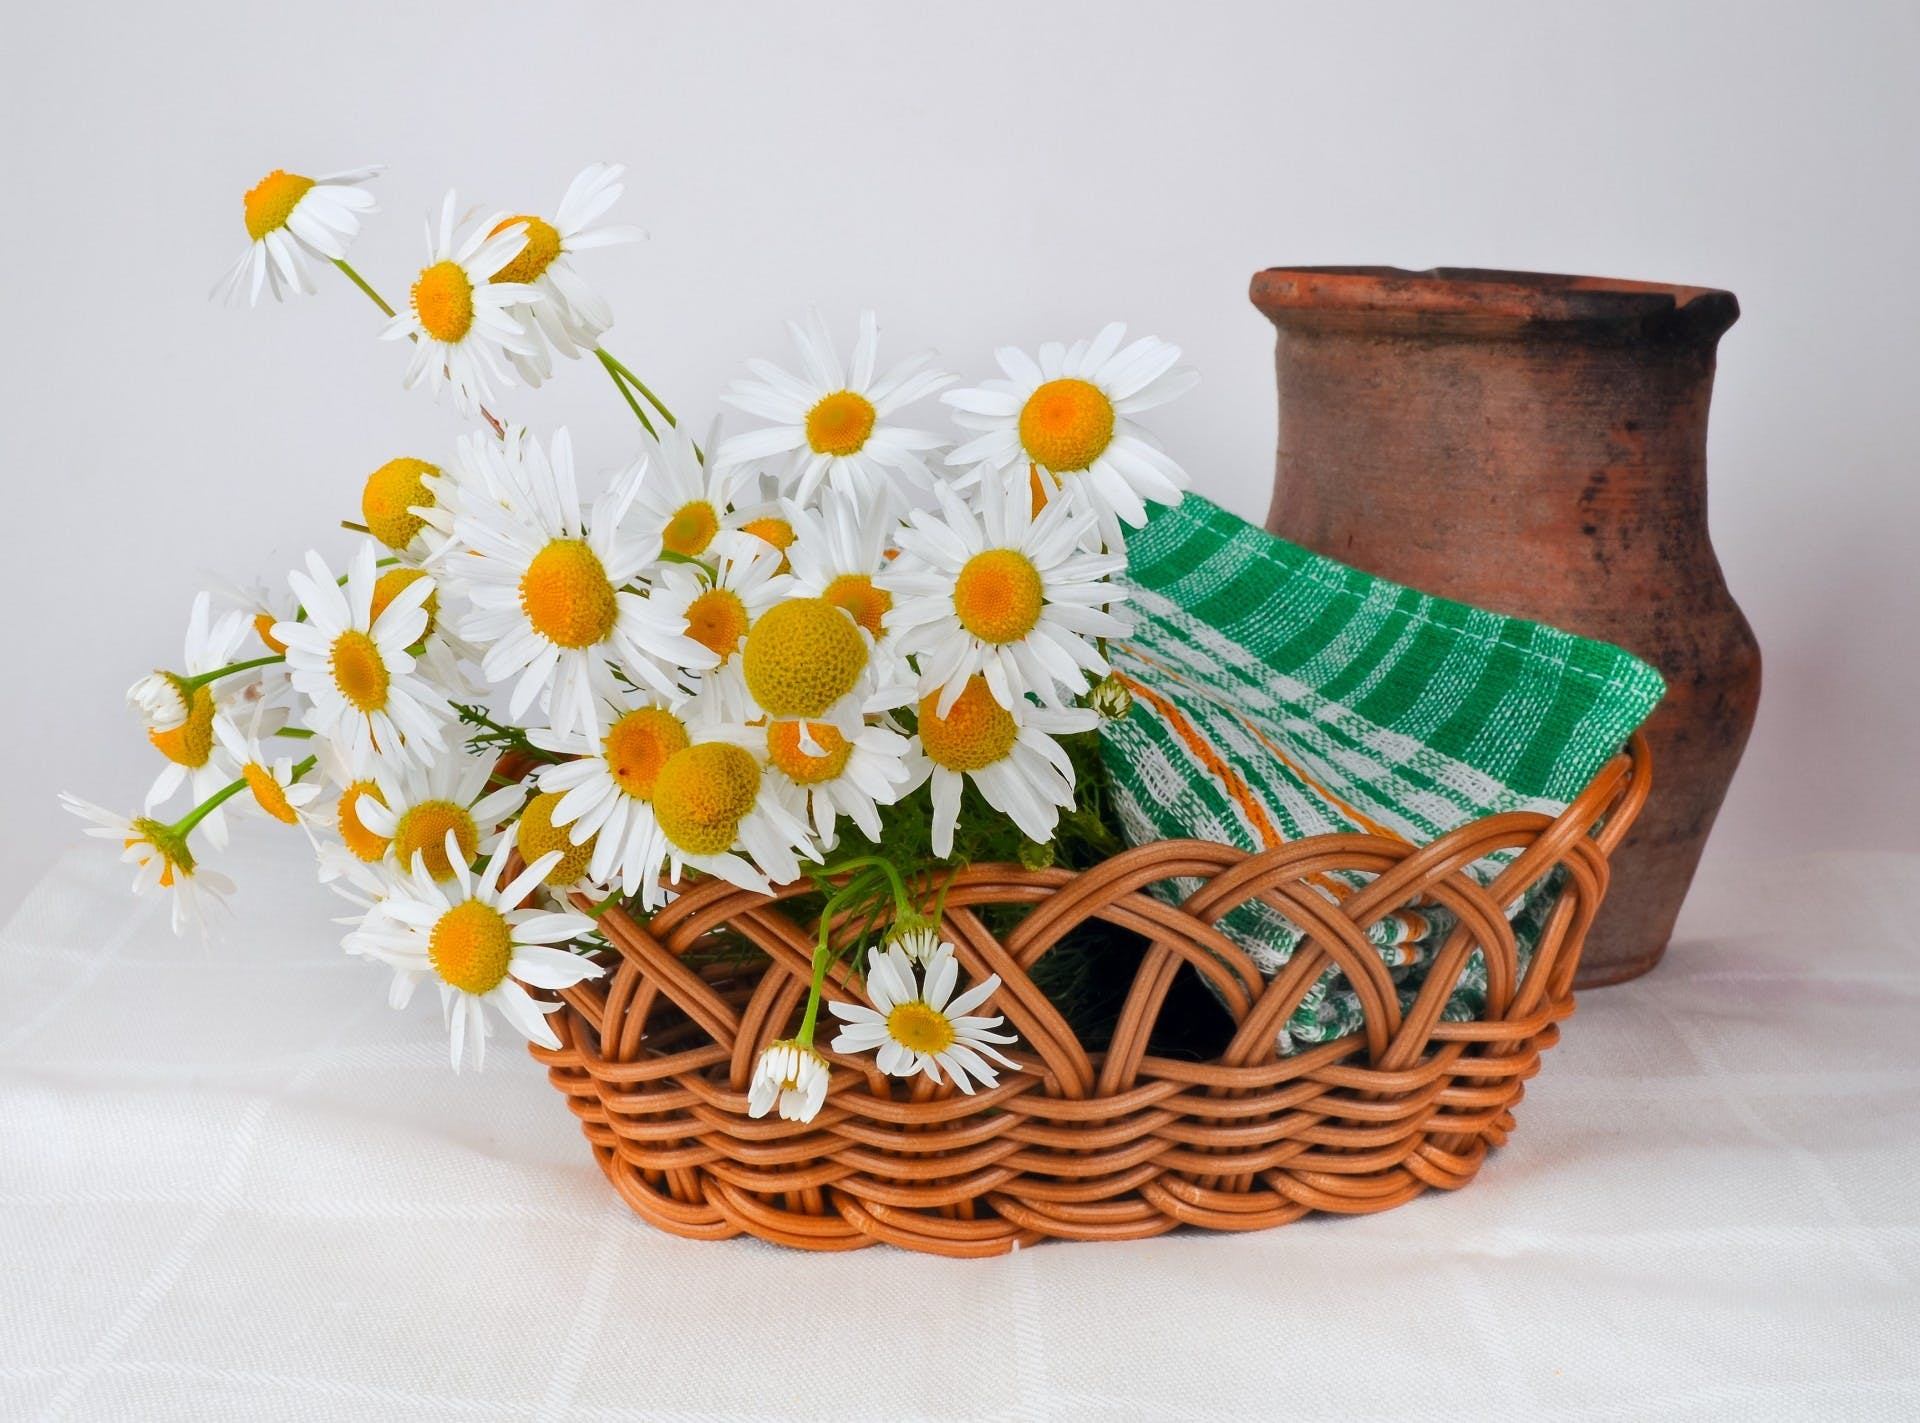 White and Orange Daisy Flowers on Brown Woven Basket Near Brown Vase